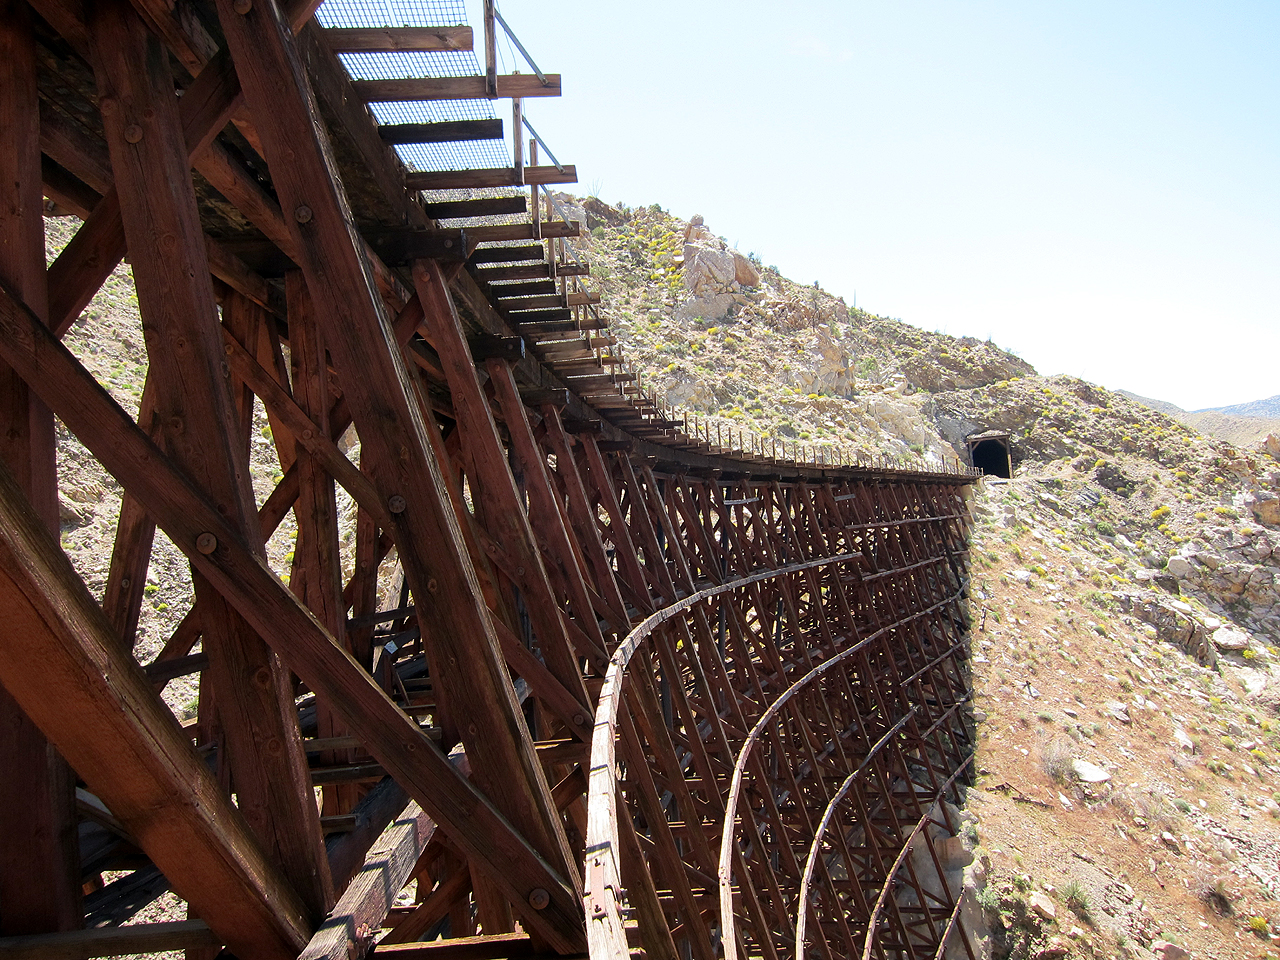 View looking south from under the Goat Canyon Trestle